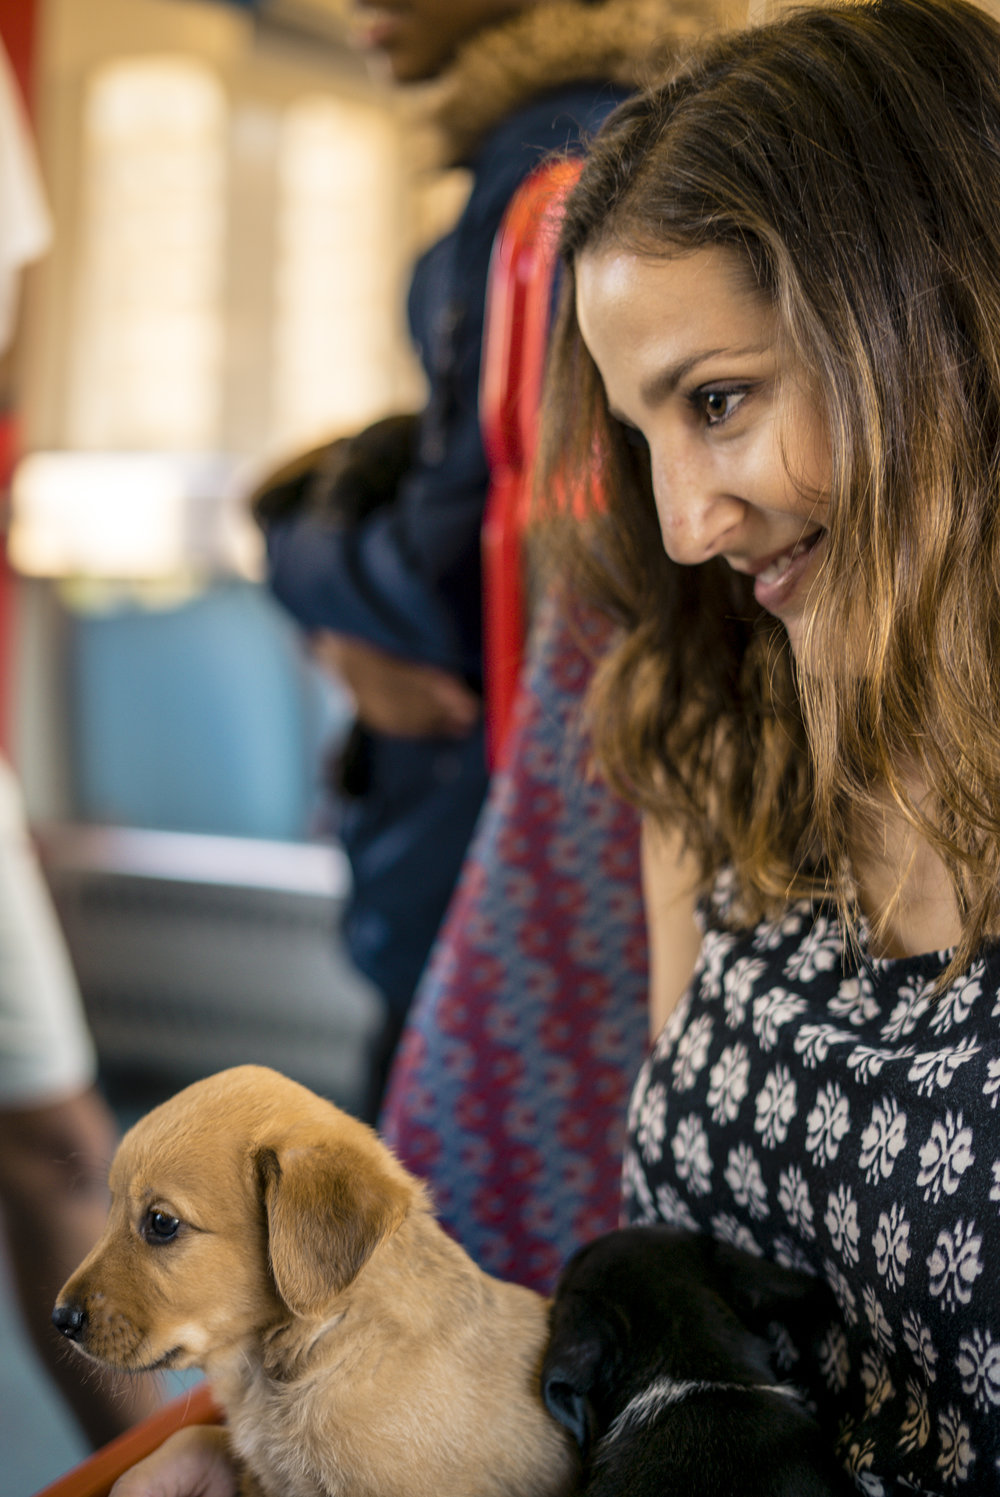 You get free puppies when you ride the train